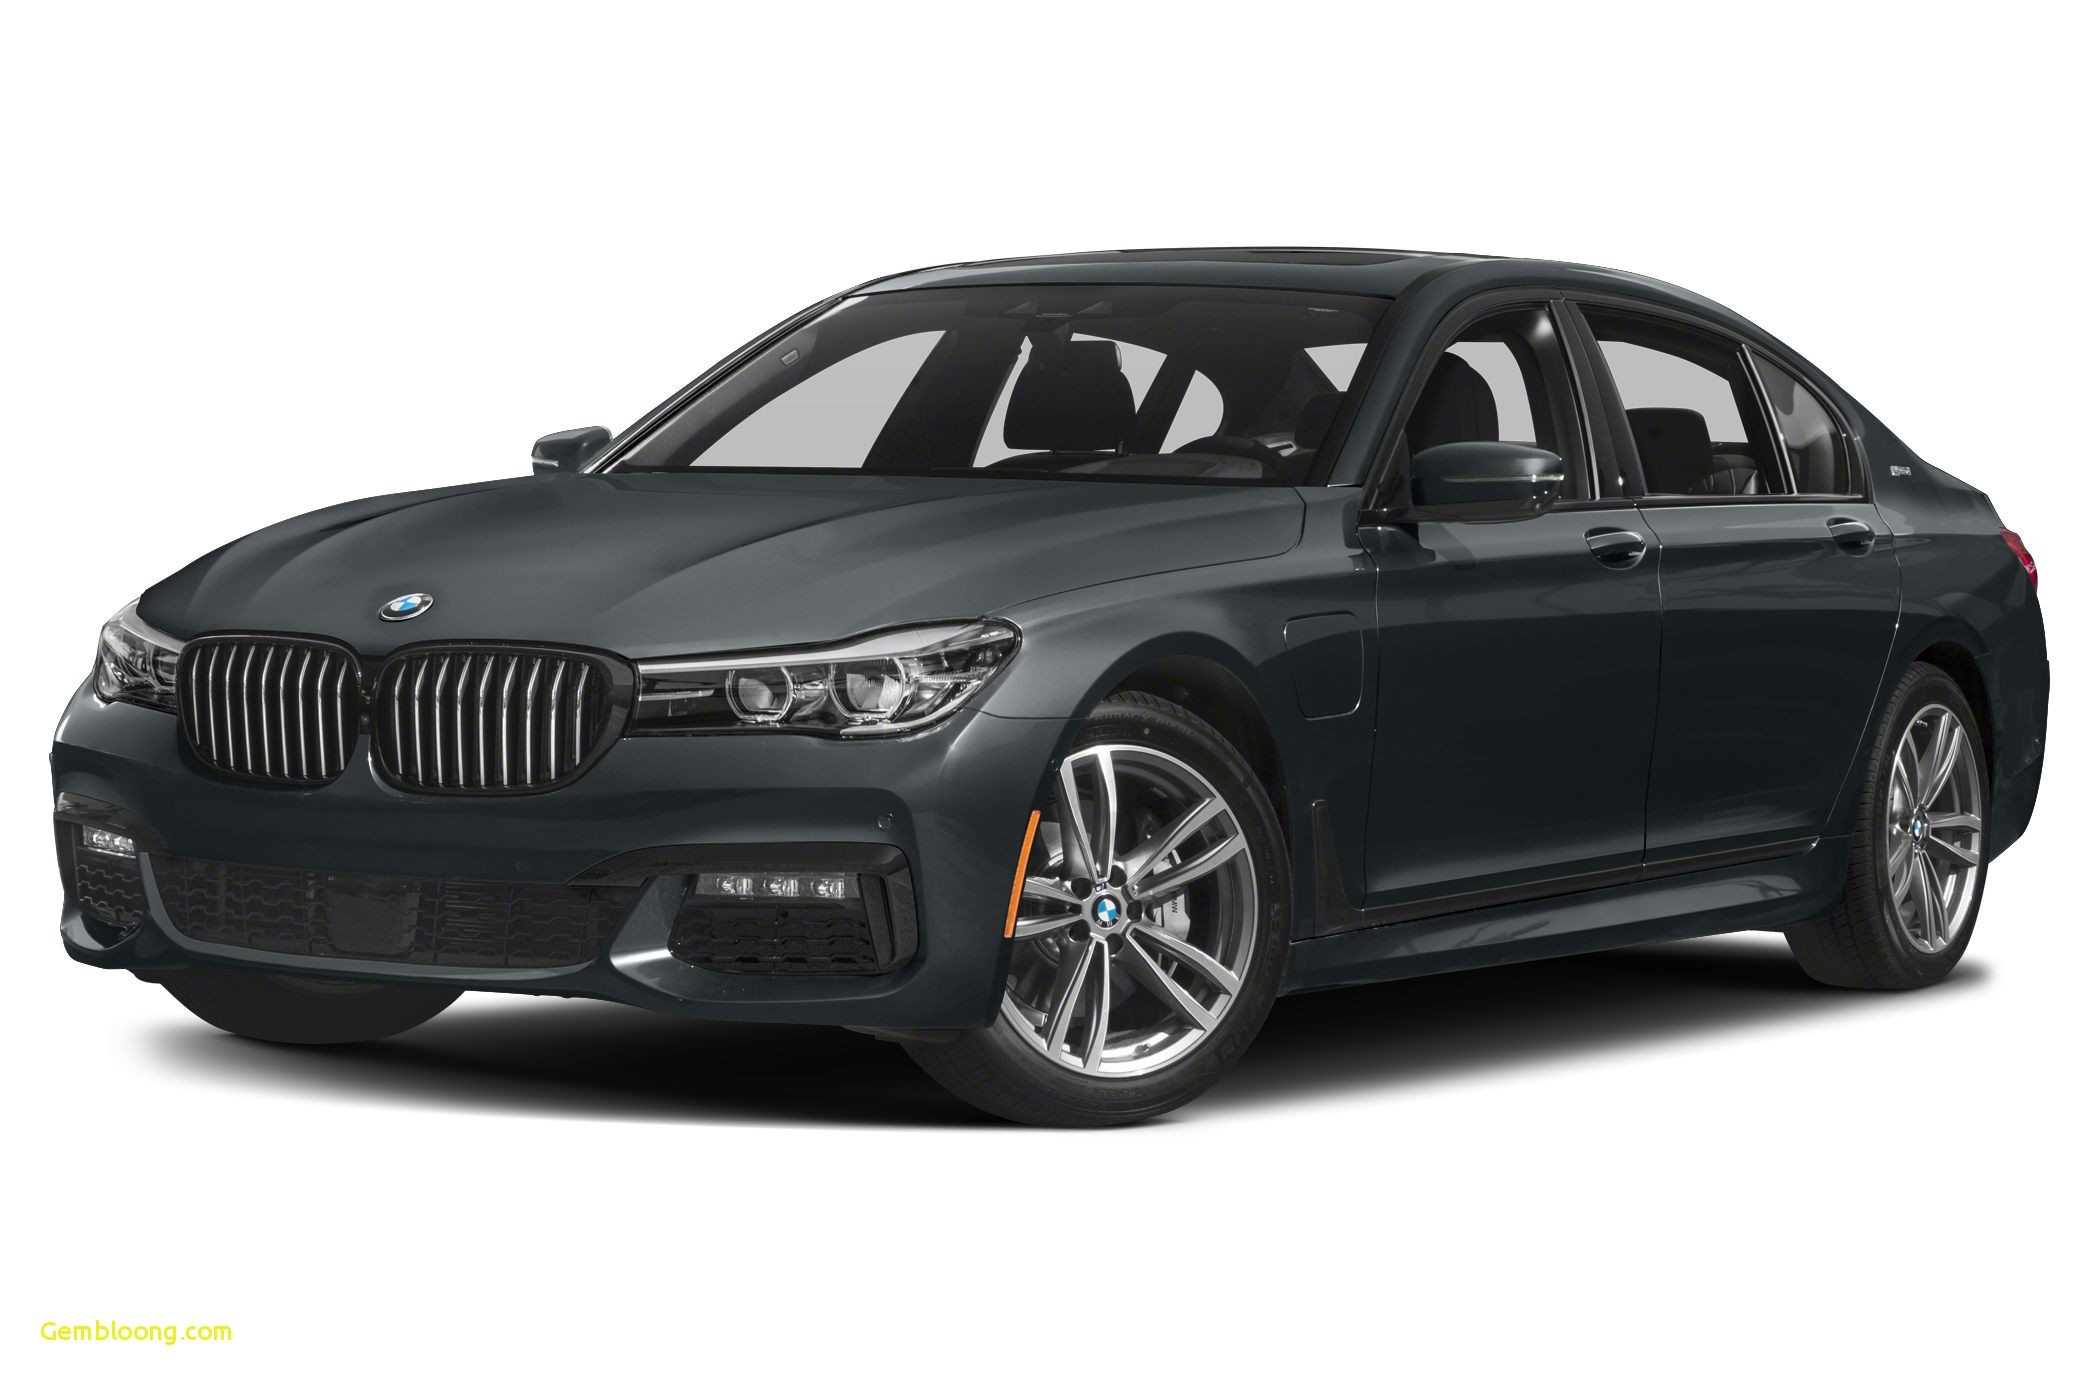 27 The 2020 BMW 7 Series Perfection New Price